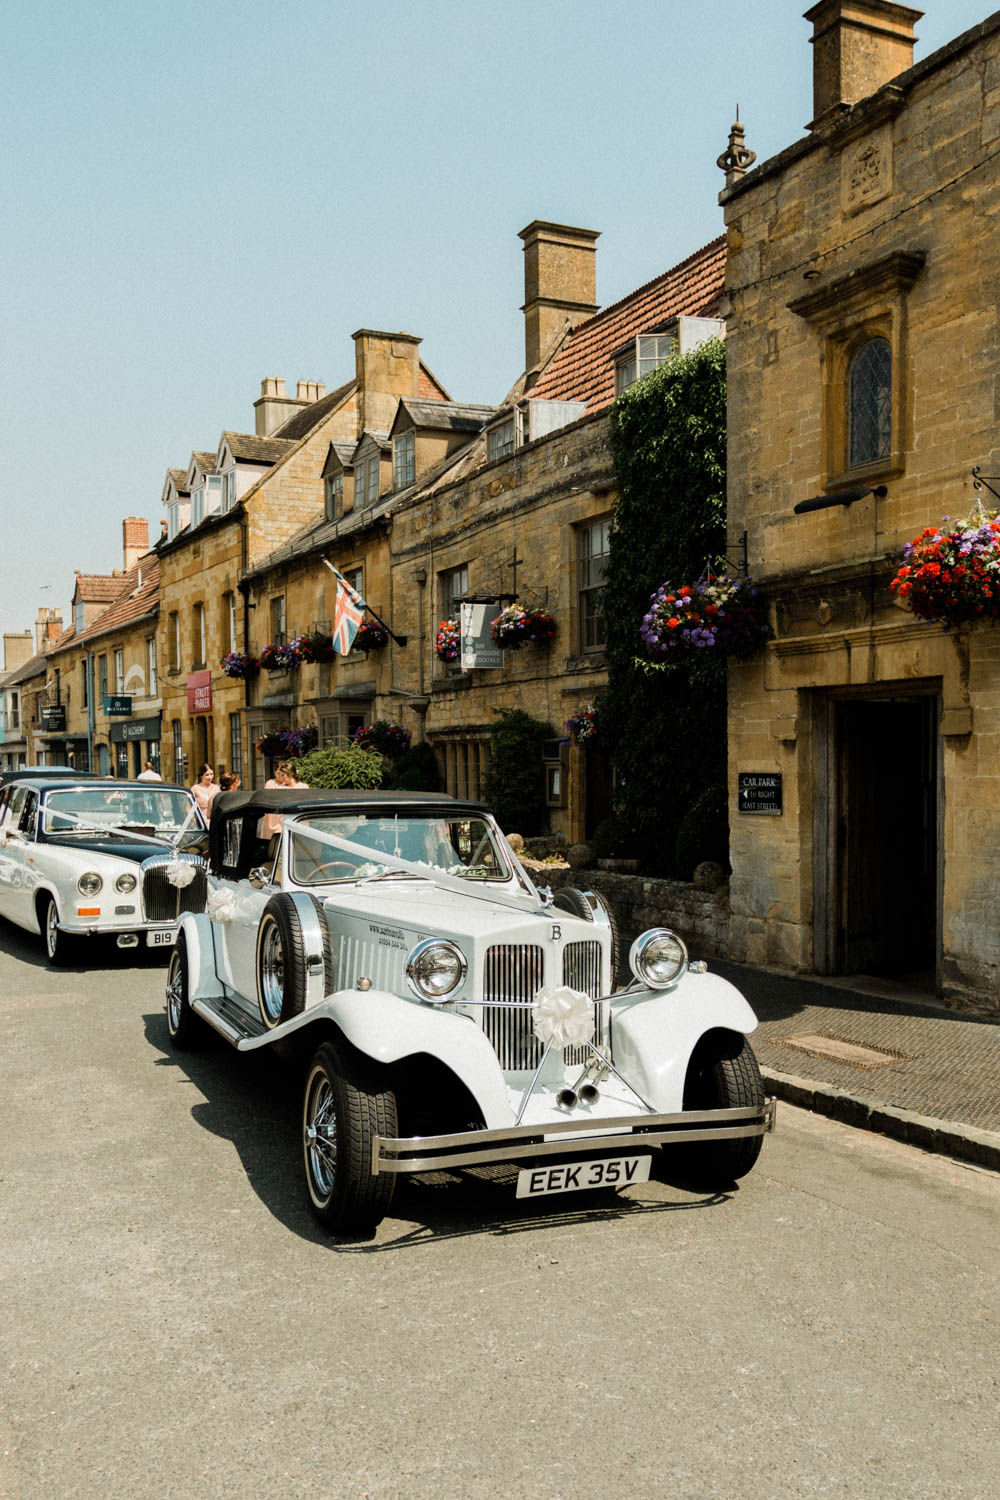 Special-Day-Photography-The-Manor-House-Hotel-Moreton-in-Marsh-Moreton-In-Marsh-Summer-Wedding-Vintage-car-waiting-outside-a-wedding-venue-in-the-Cotswolds.jpg